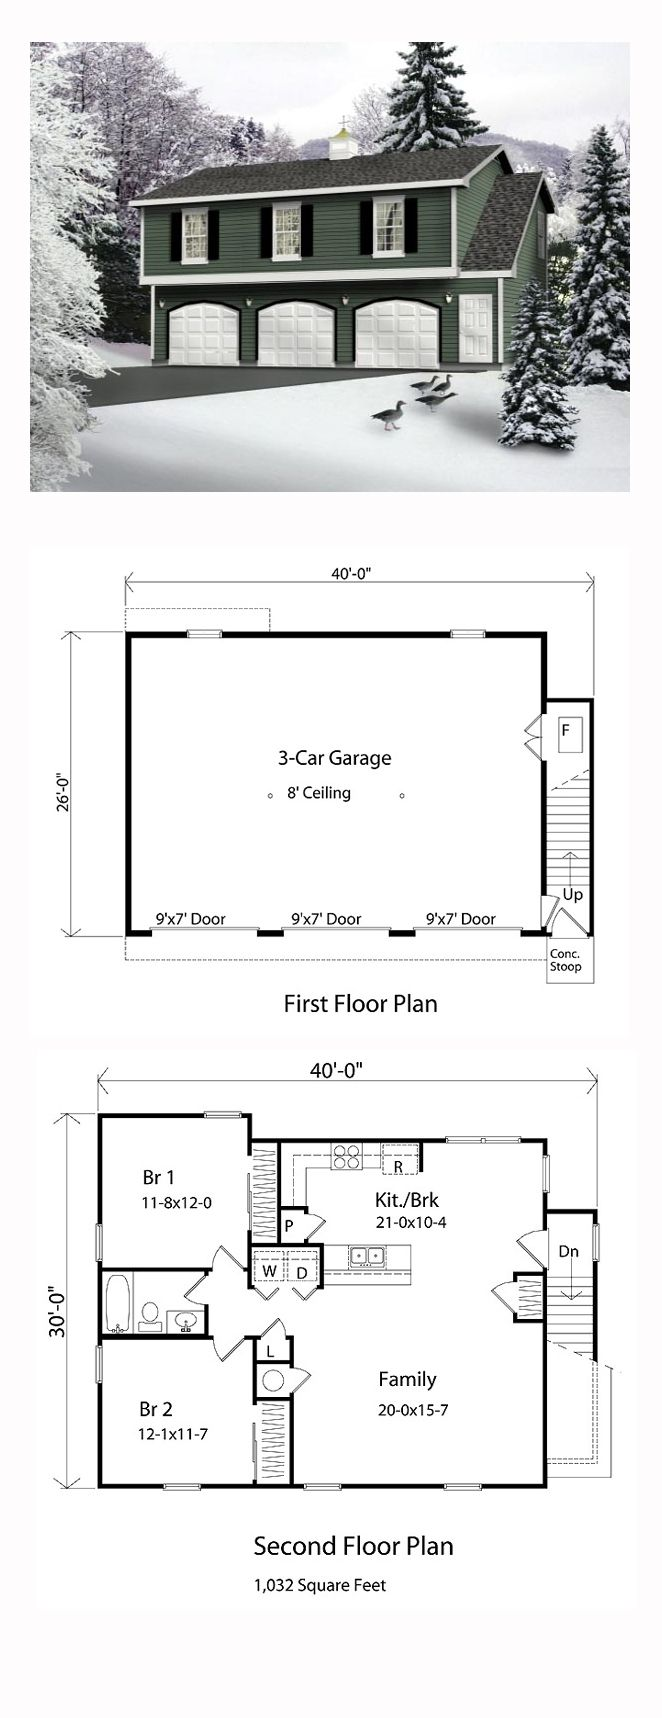 Garage apartment plan 49029 total living area 1032 sq for 2 bedroom 2 bath garage apartment plans